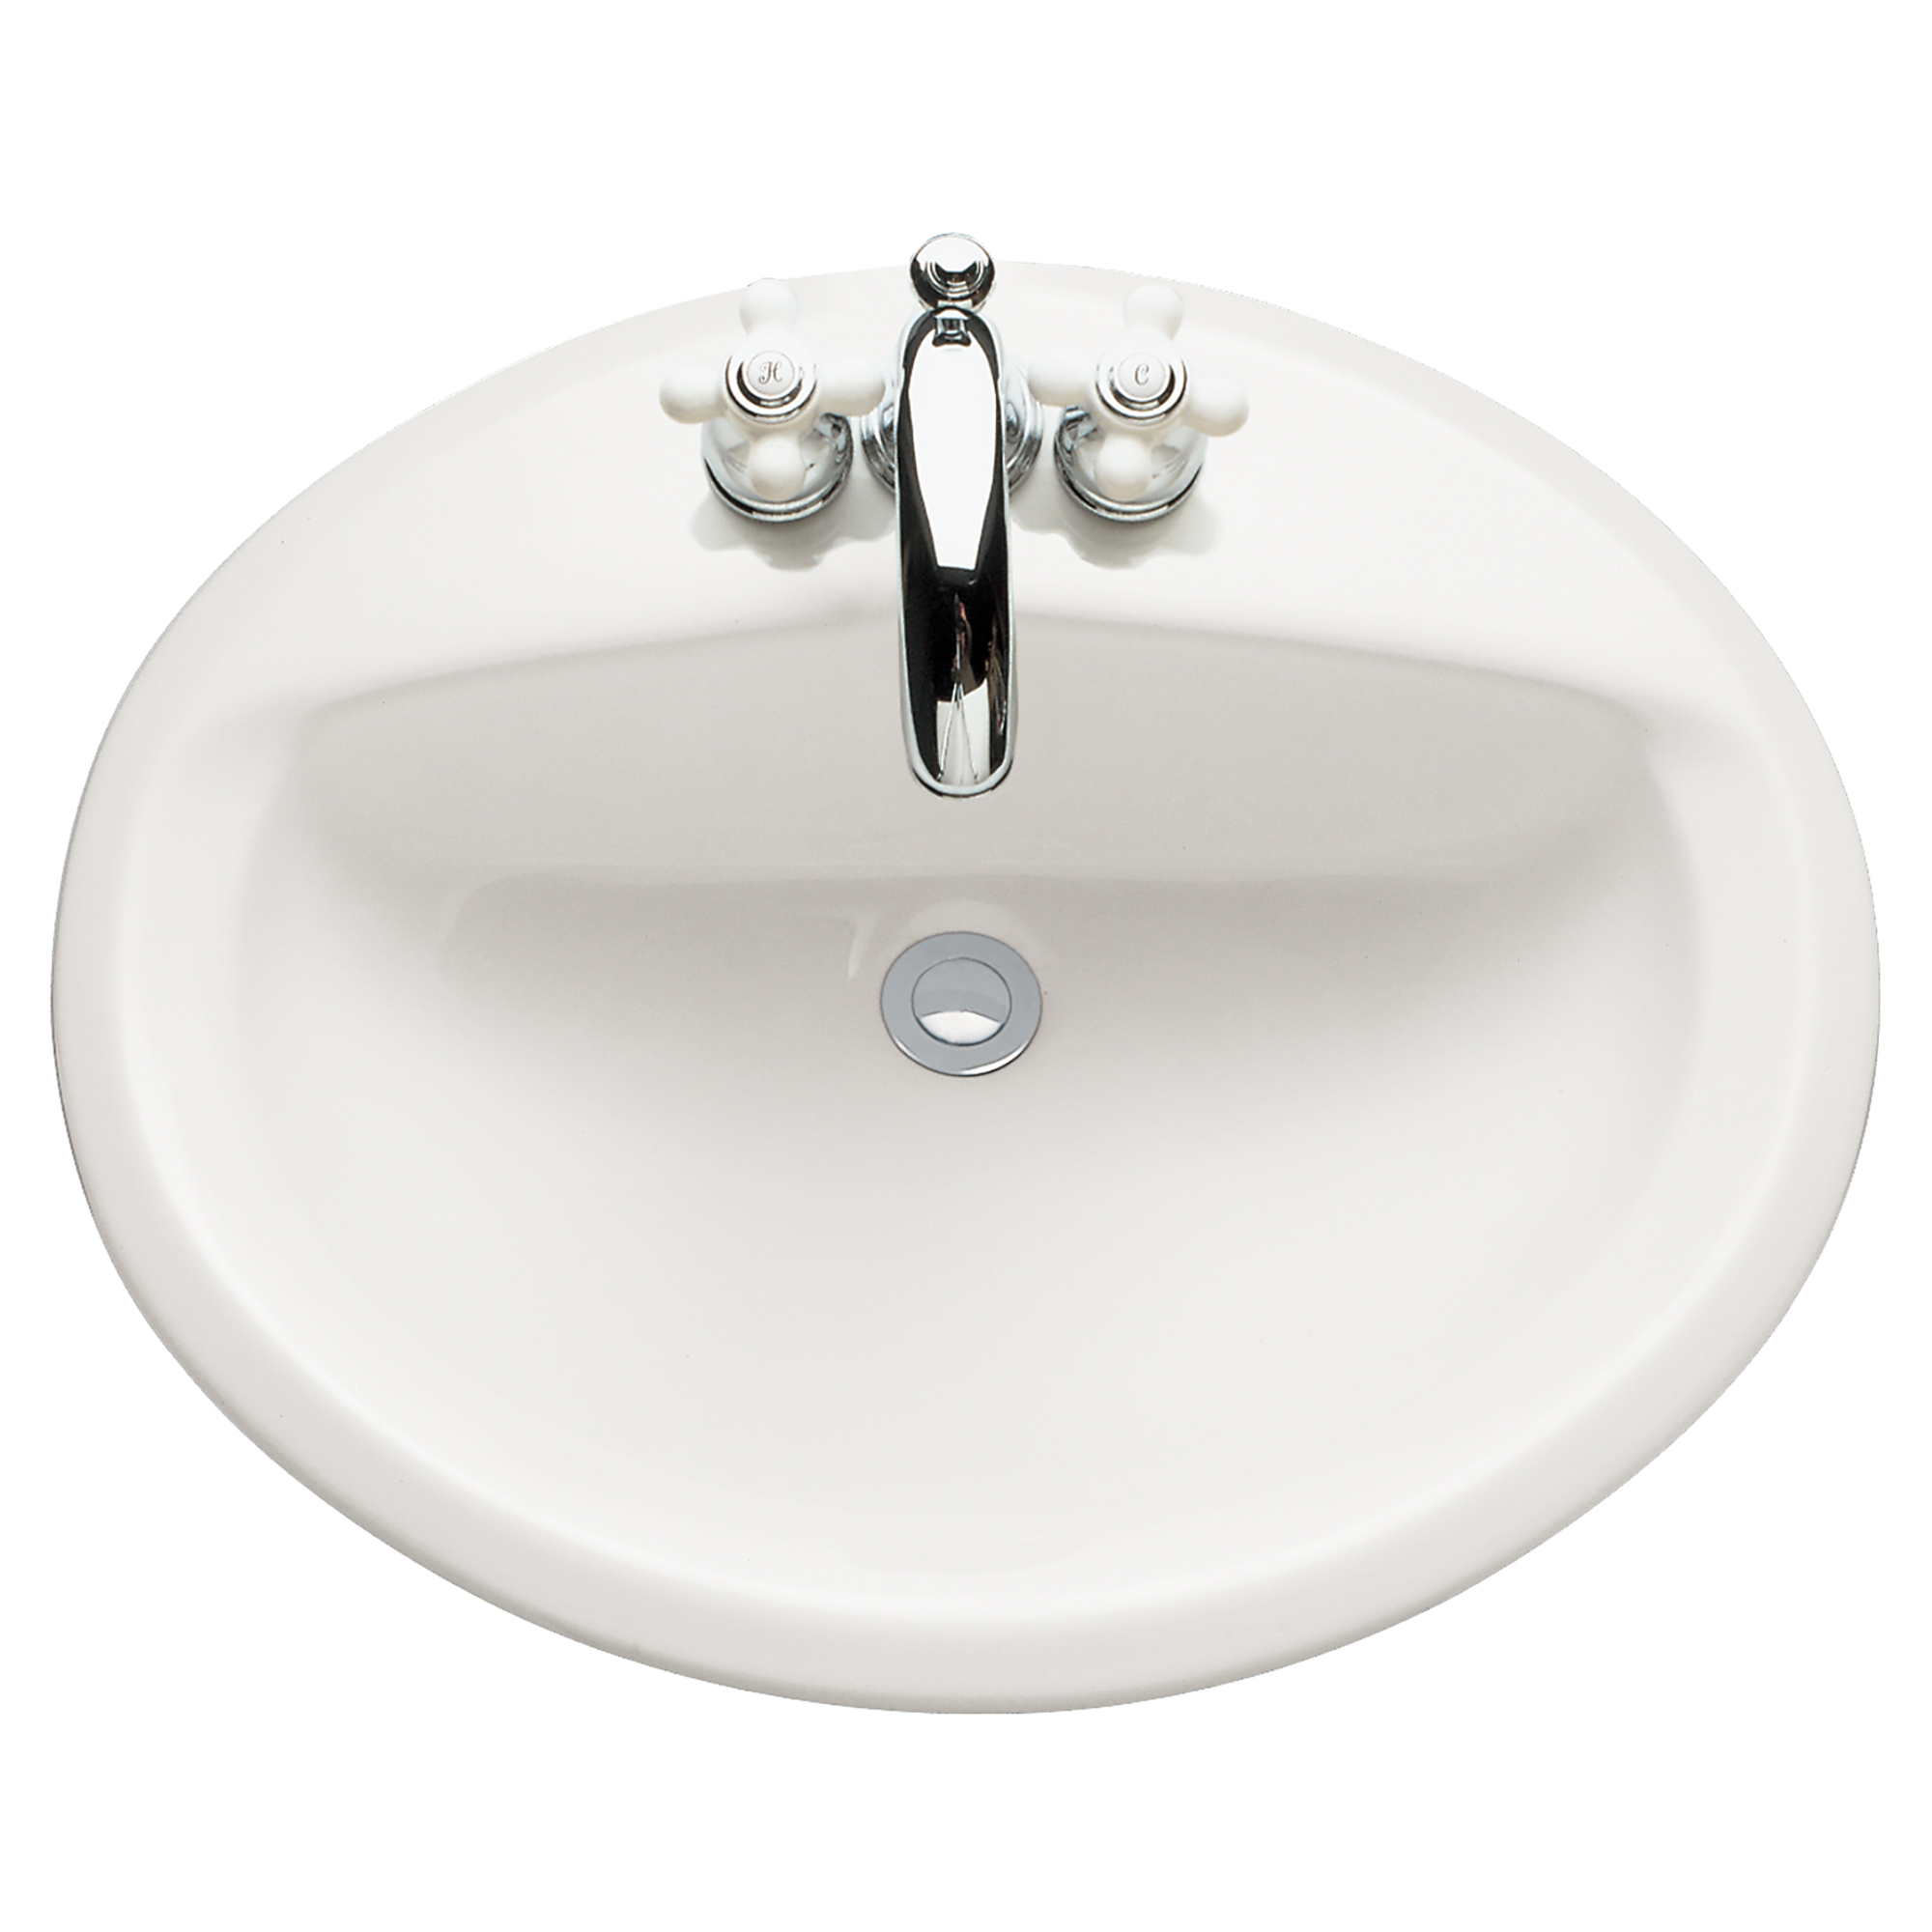 American Standard 0476.028.020 Aqualyn® Self-Rimming Bathroom Sink With Front Overflow, Oval, 4 in Faucet Hole Spacing, 20-3/8 in W x 17-3/8 in D x 7 in H, Countertop/Drop-In Mount, Vitreous China, White, Domestic